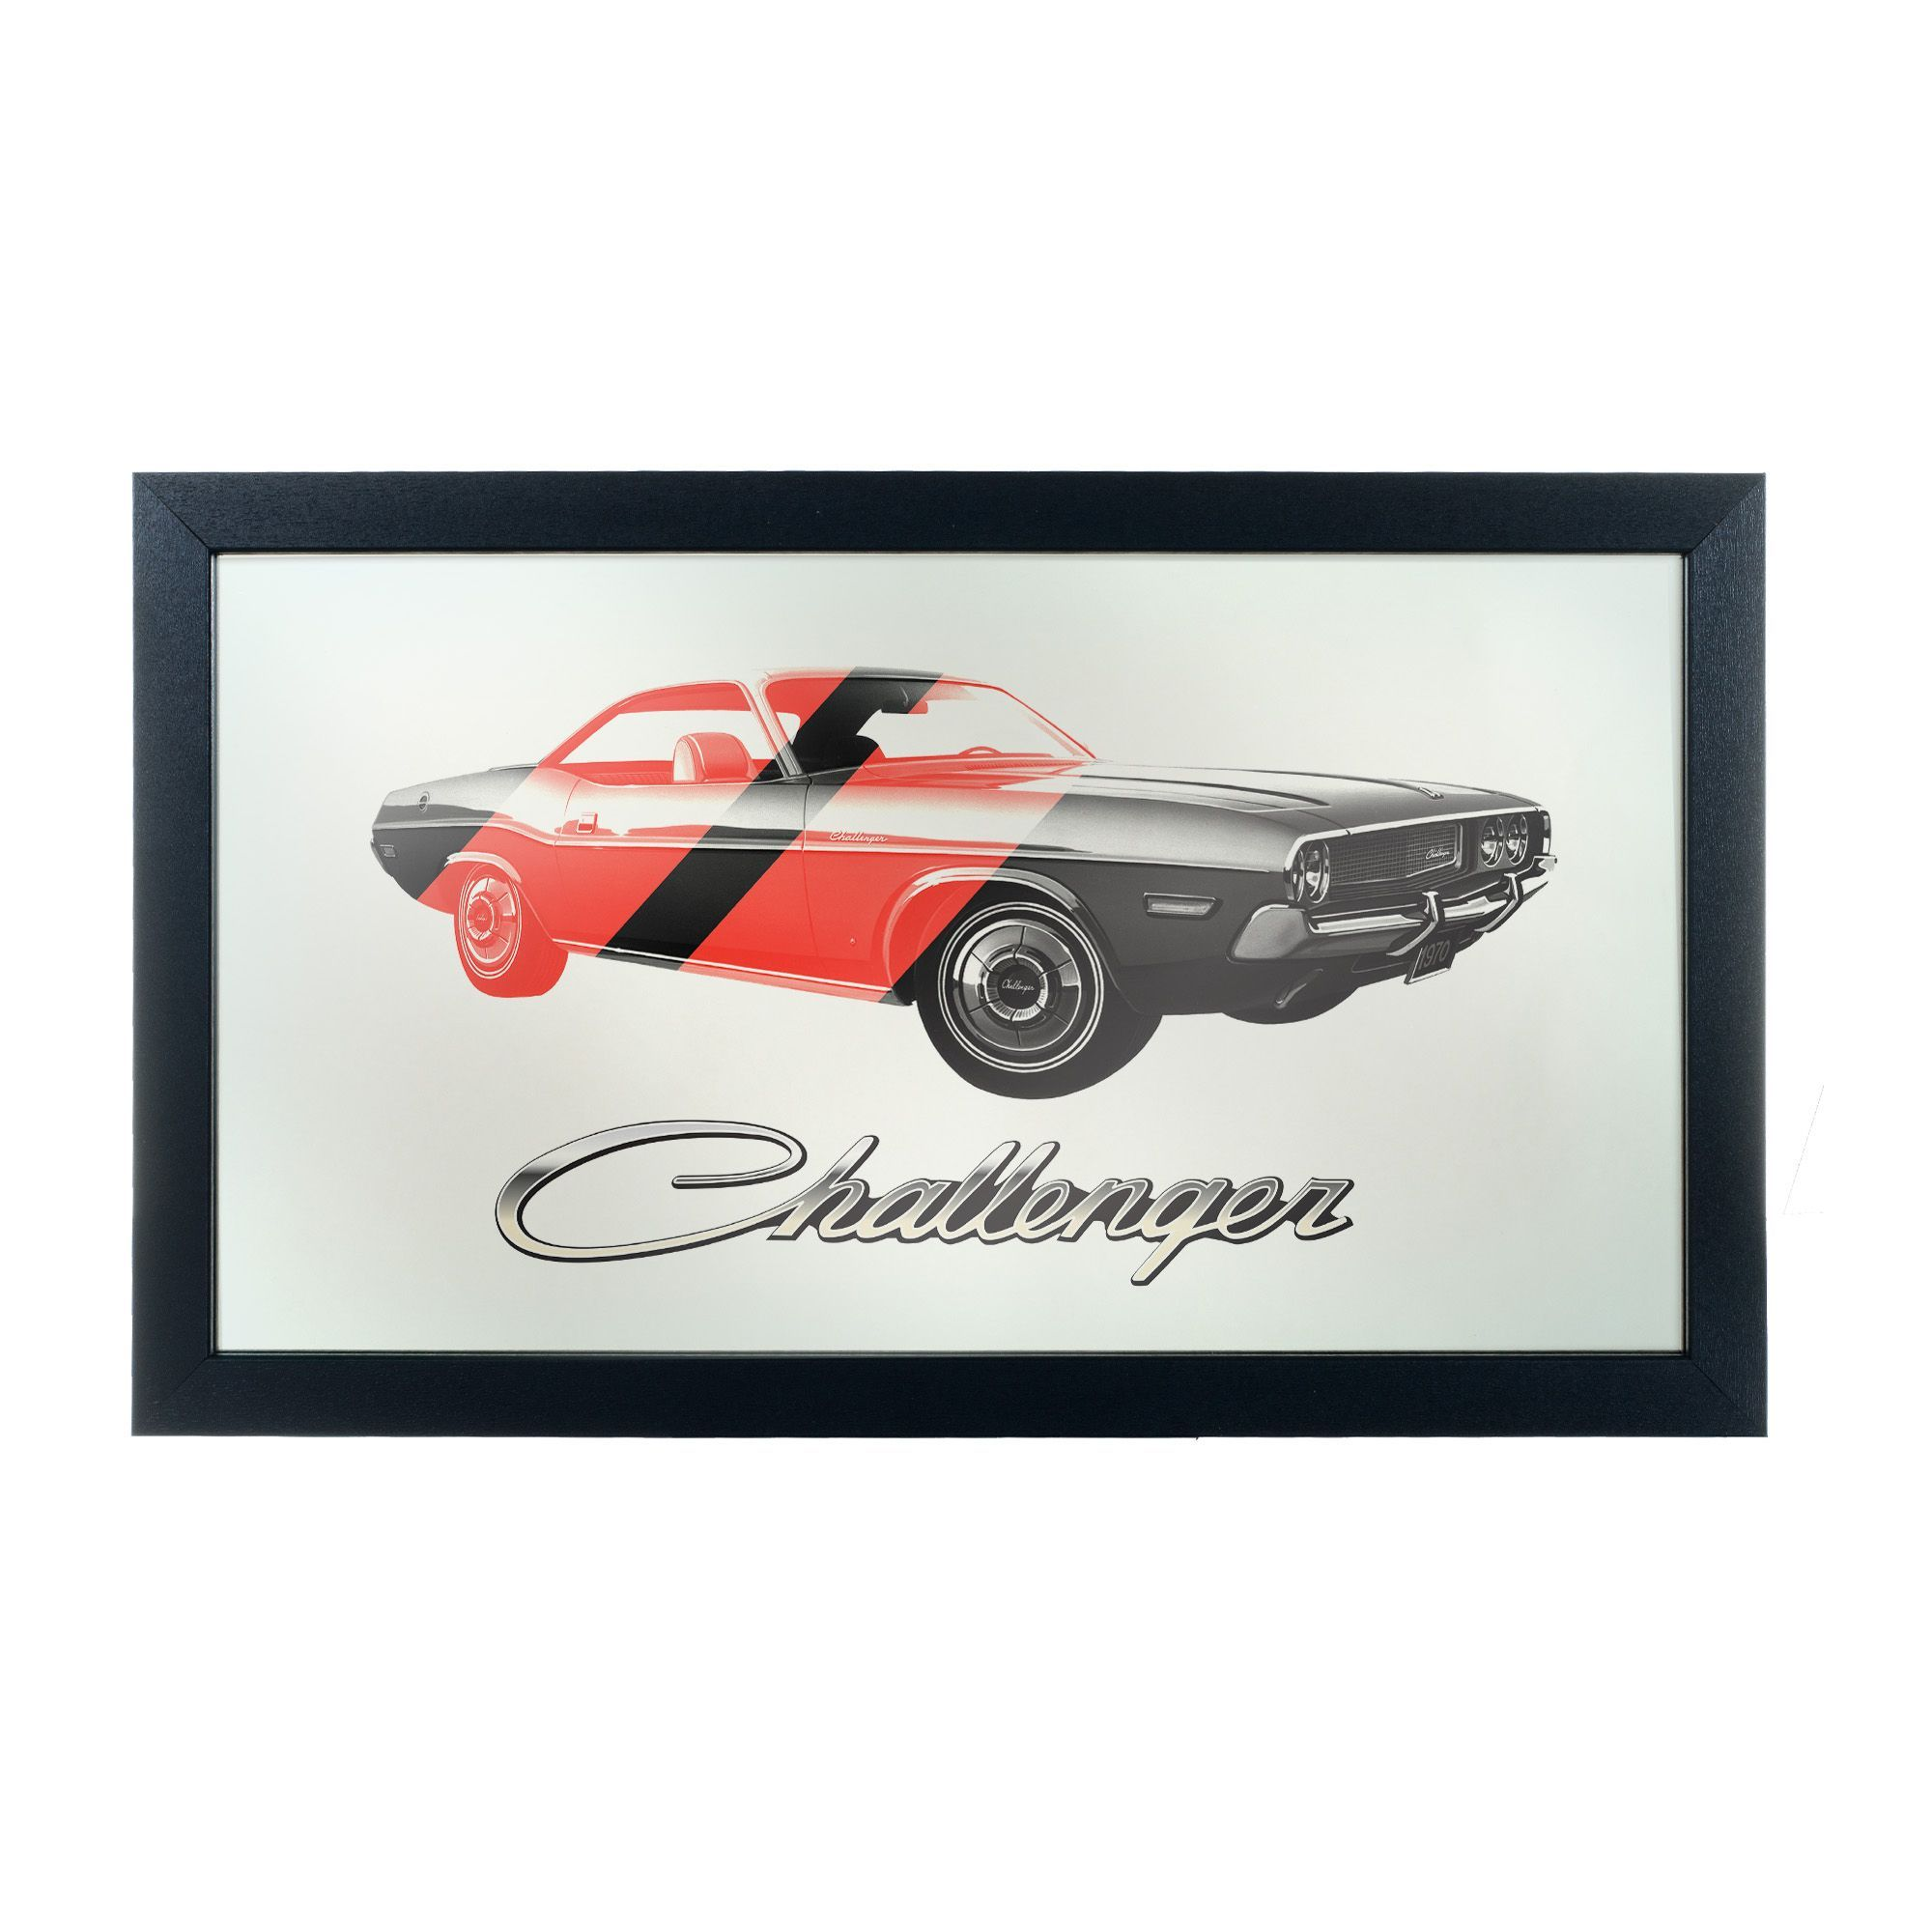 Dodge Challenger Stripes 2 Logo Wall Mirror   The Dodge Challenger Stripes  2 Logo Wall Mirror U0027s Classic Car Motif Offers Bold, Retro Detail To  Enhance Your ...